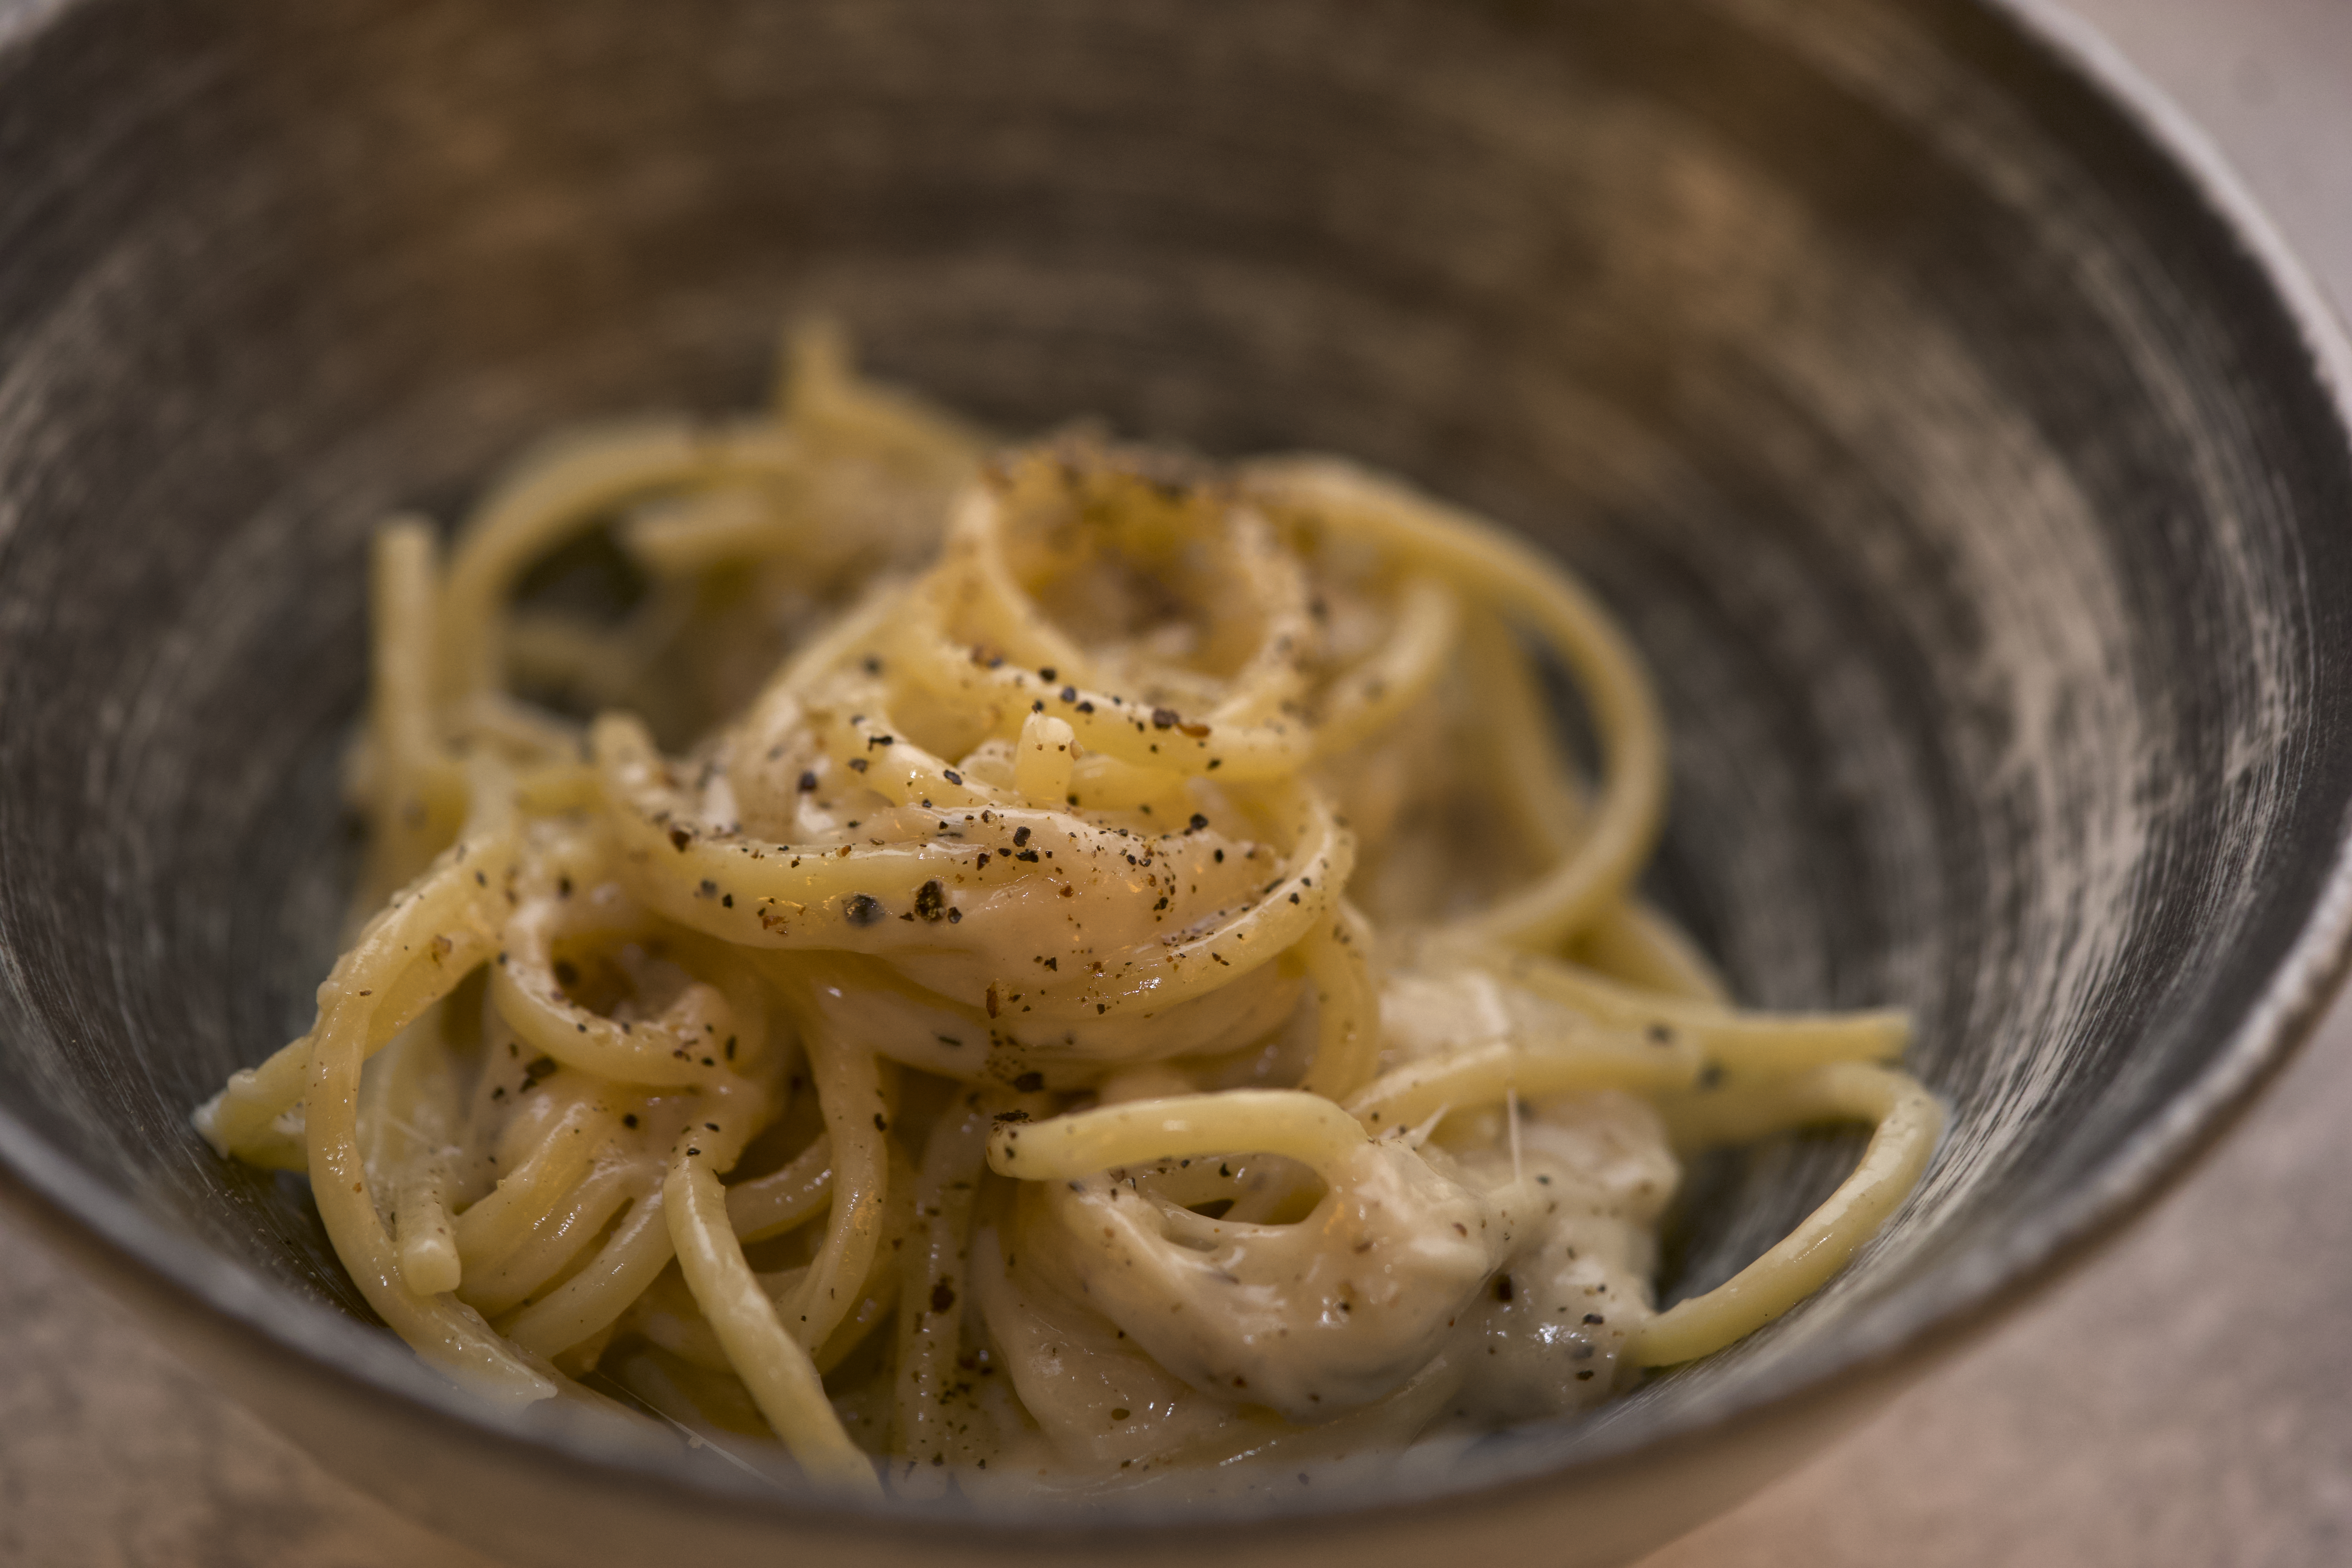 Quest for the foolproof cacio e pepe recipe